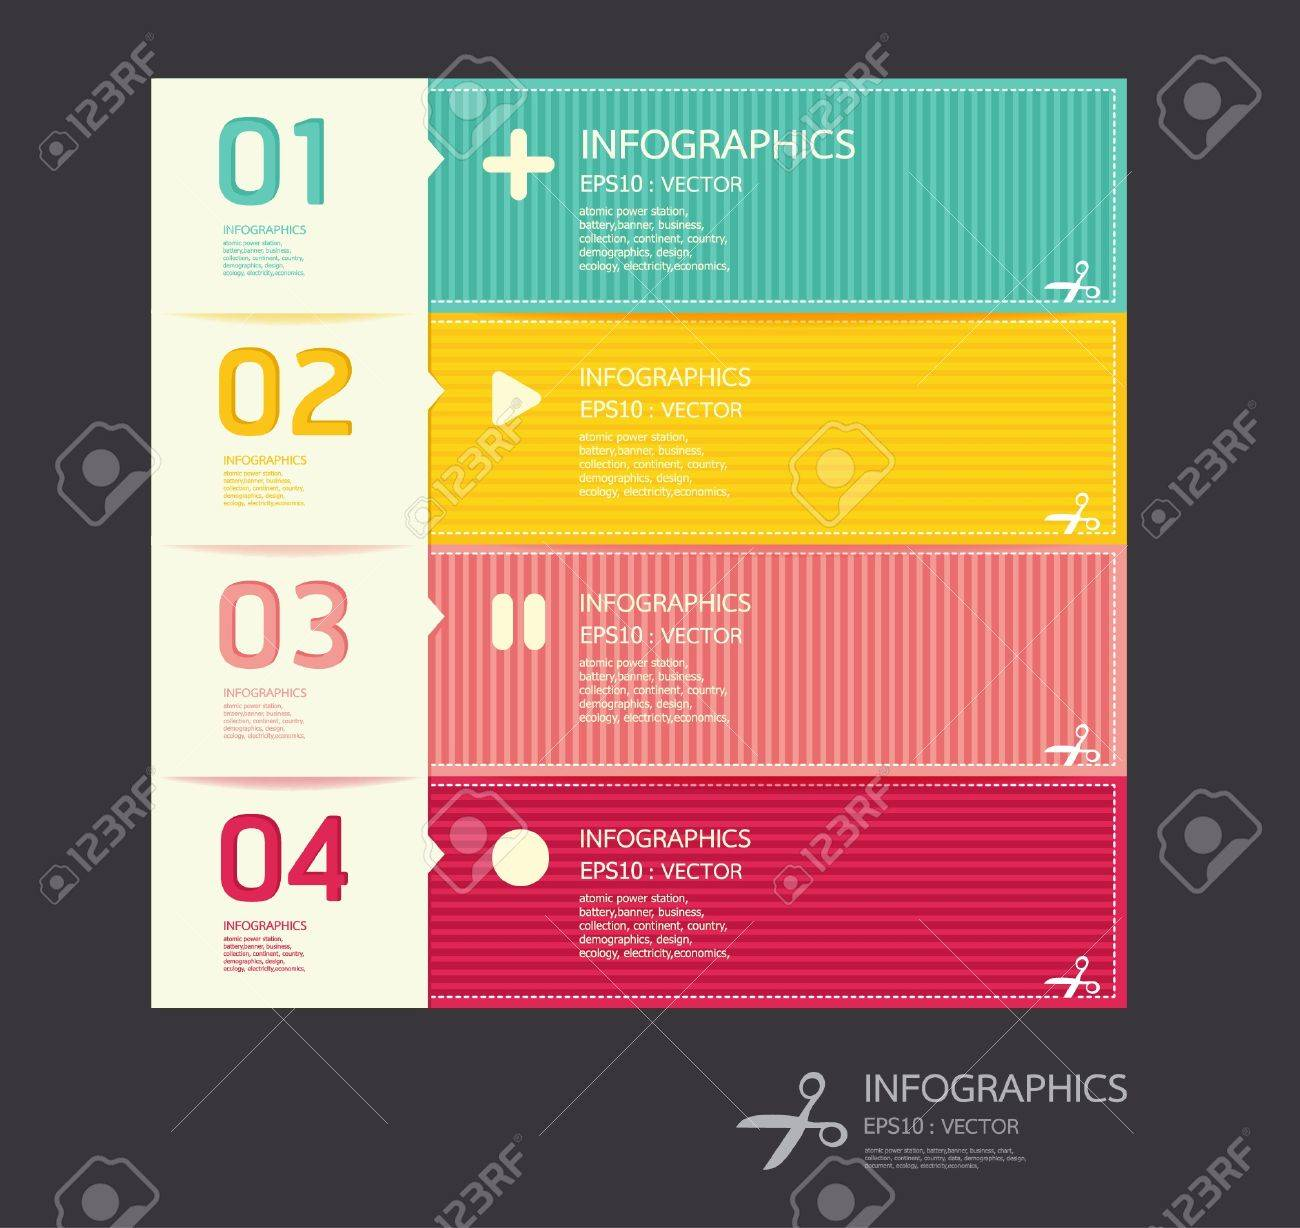 Modern colors web design - Colors Used In Website Modern Soft Color Design Template Can Be Used For Infographics Numbered